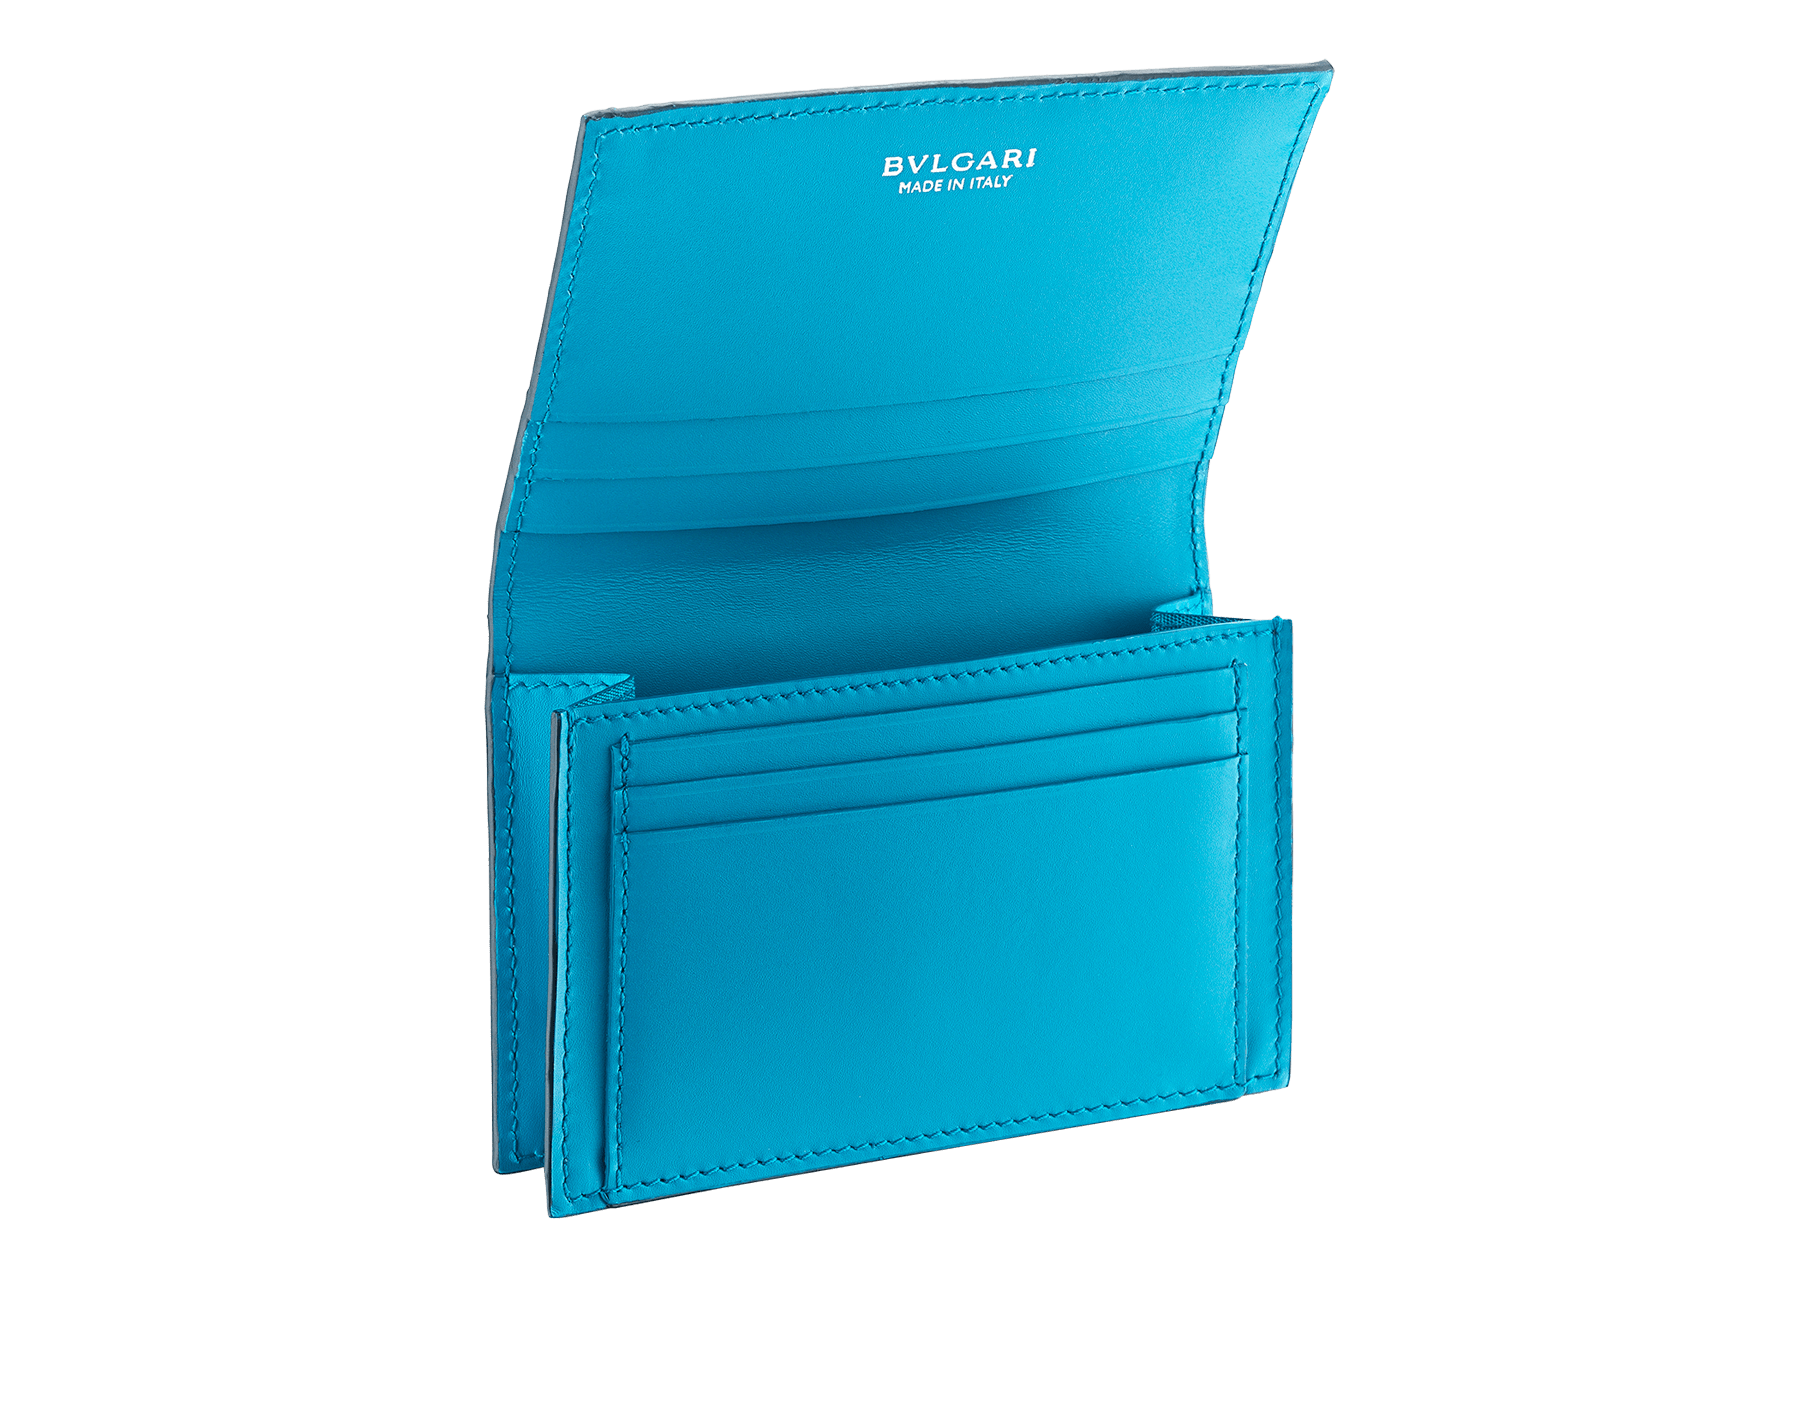 """""""BVLGARI BVLGARI"""" business card holder in denim sapphire soft full grain calf leather and capri turquoise calf leather, with brass palladium plated logo décor coloured in capri turquoise enamel. BBM-BC-HOLD-SIMPLE-sfgcl image 2"""